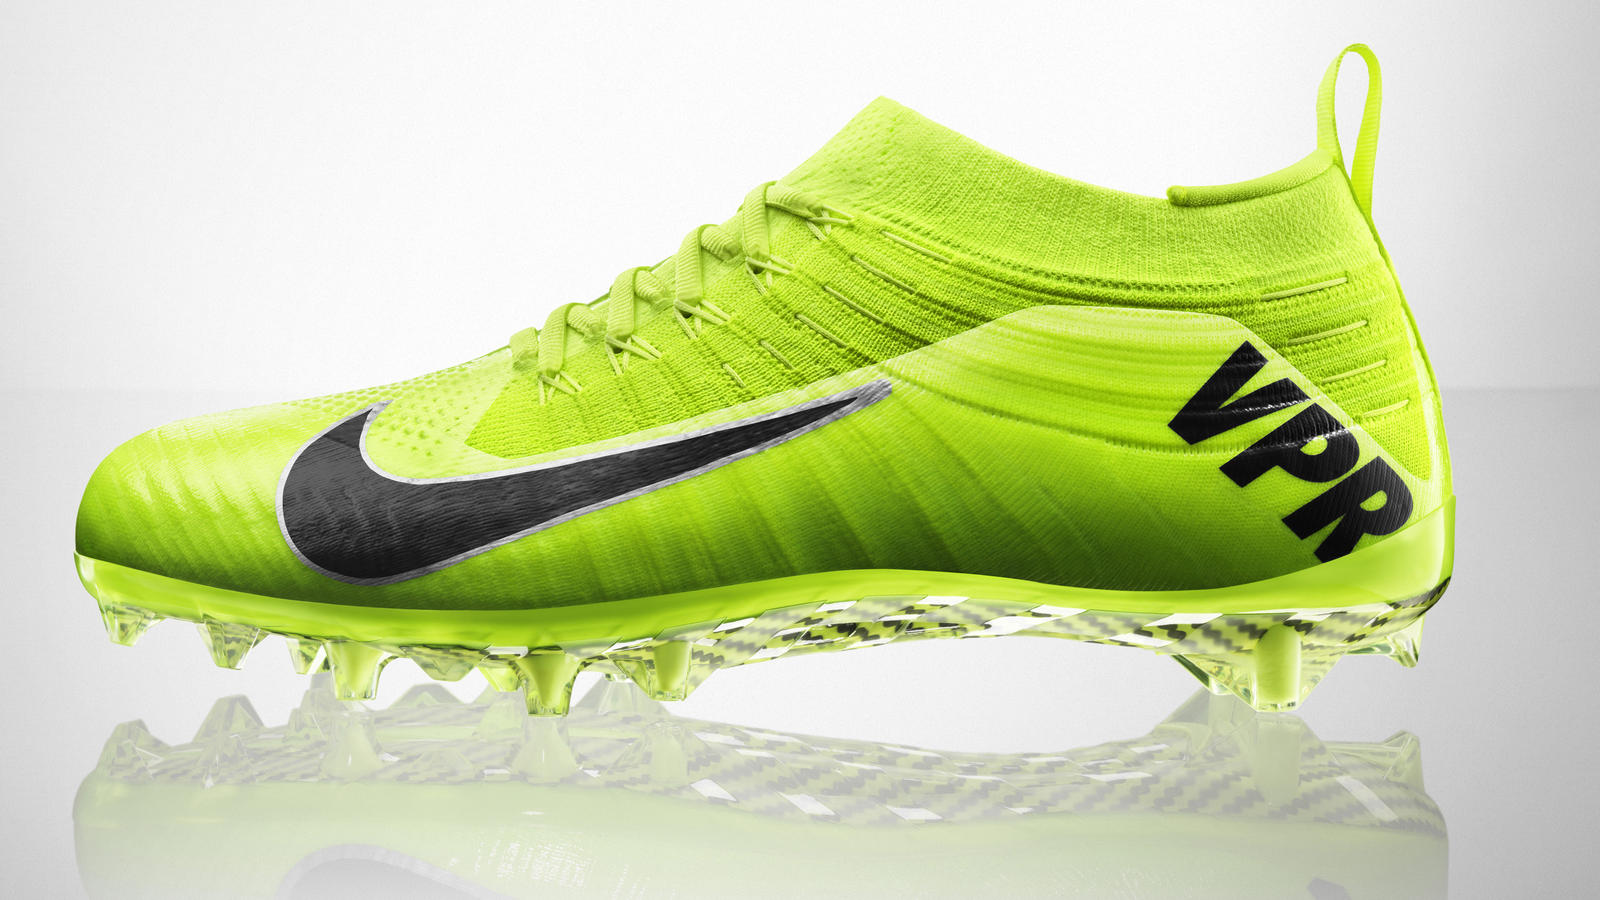 new products 190e6 9d683 fa14 at nfb vapor ult td 651338-700 profile pr. Nike Vapor Ultimate -  Football s First Flyknit Cleat